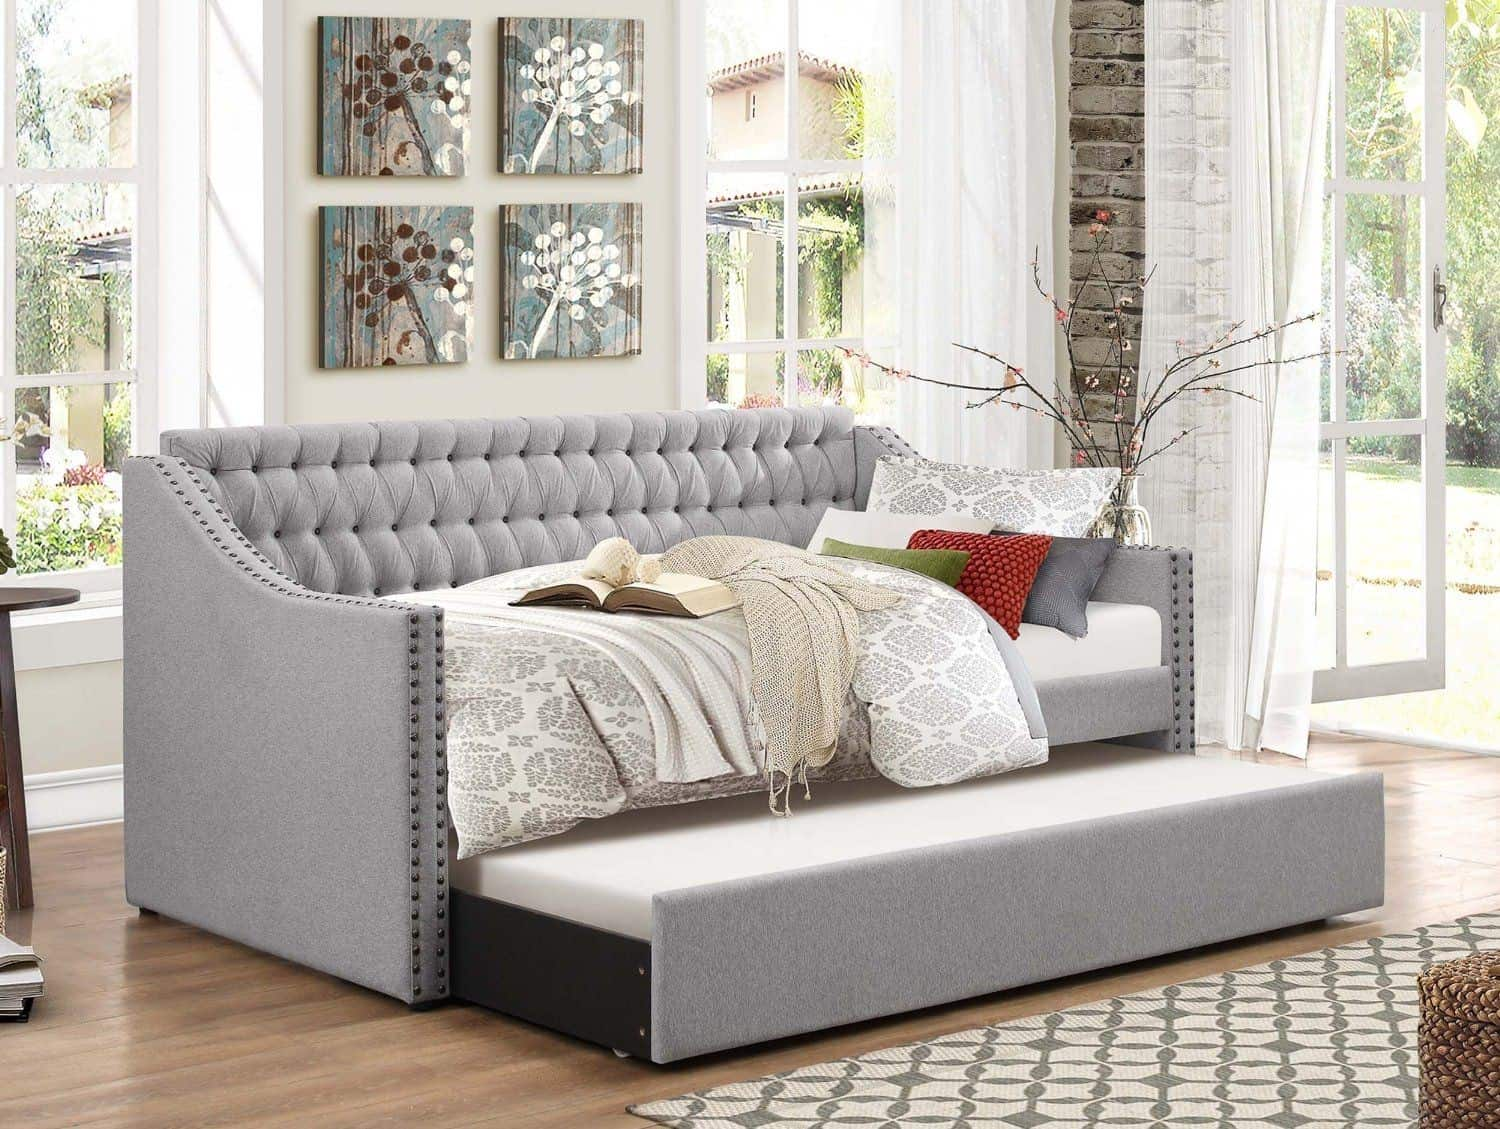 A Daybed with a Trundle